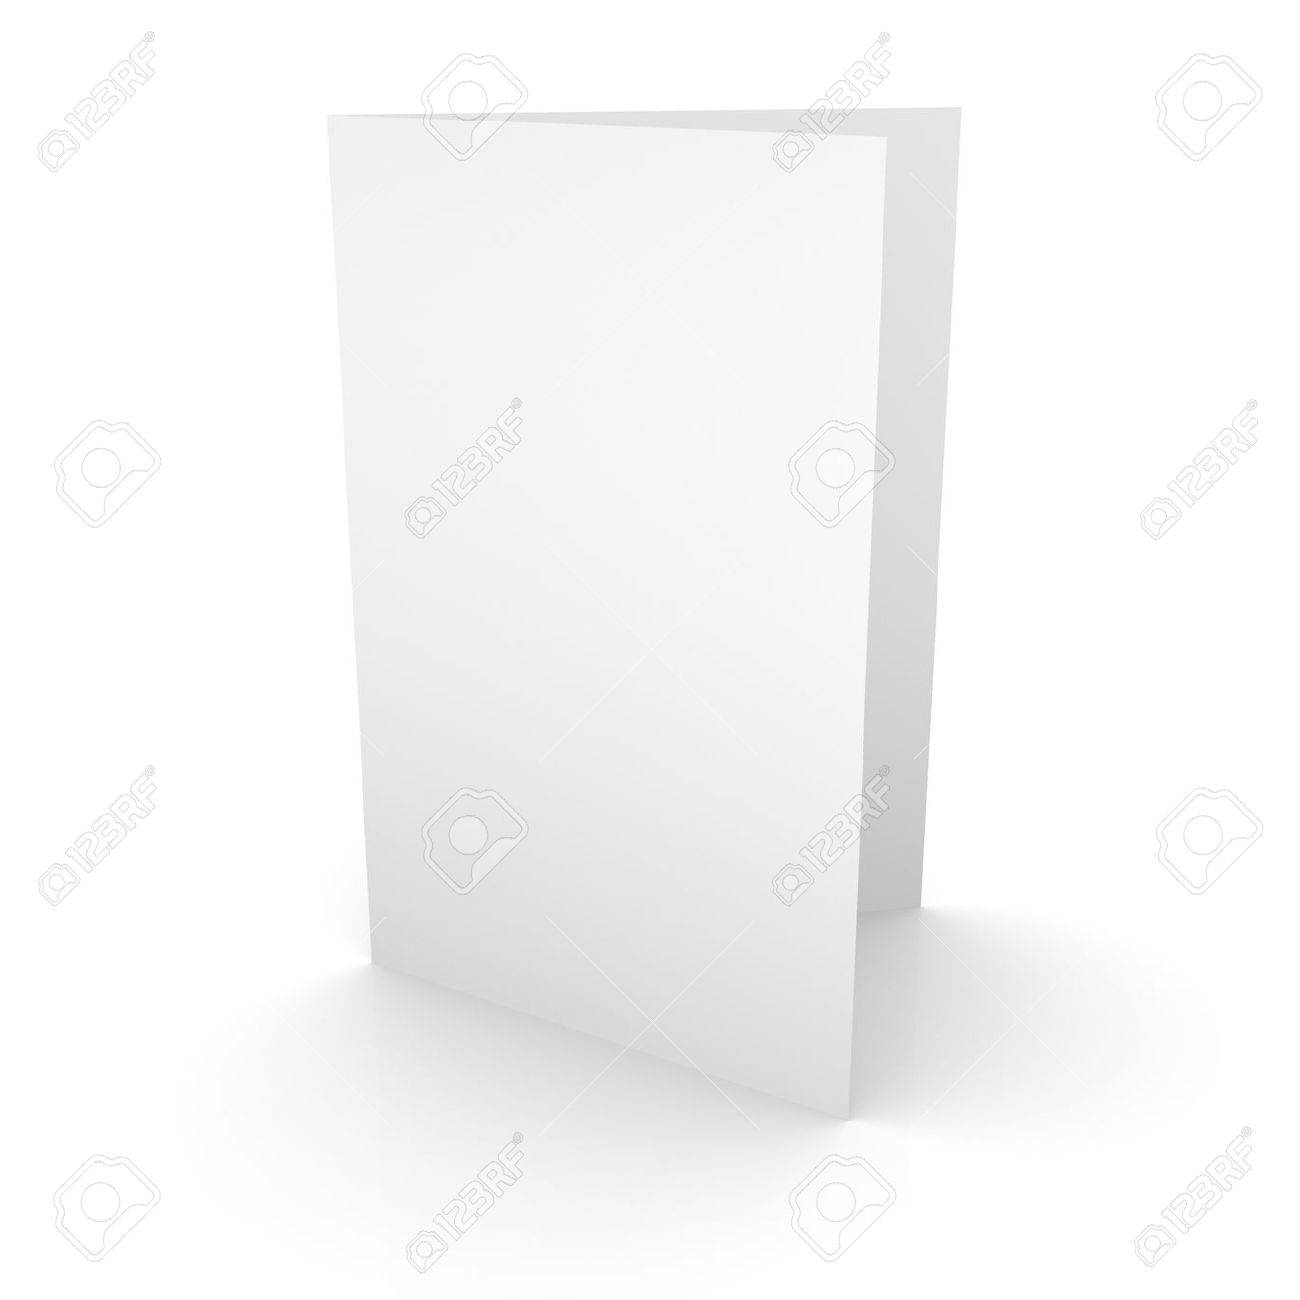 Blank Brochure Photo Picture And Royalty Free Image Image – Blank Brochure